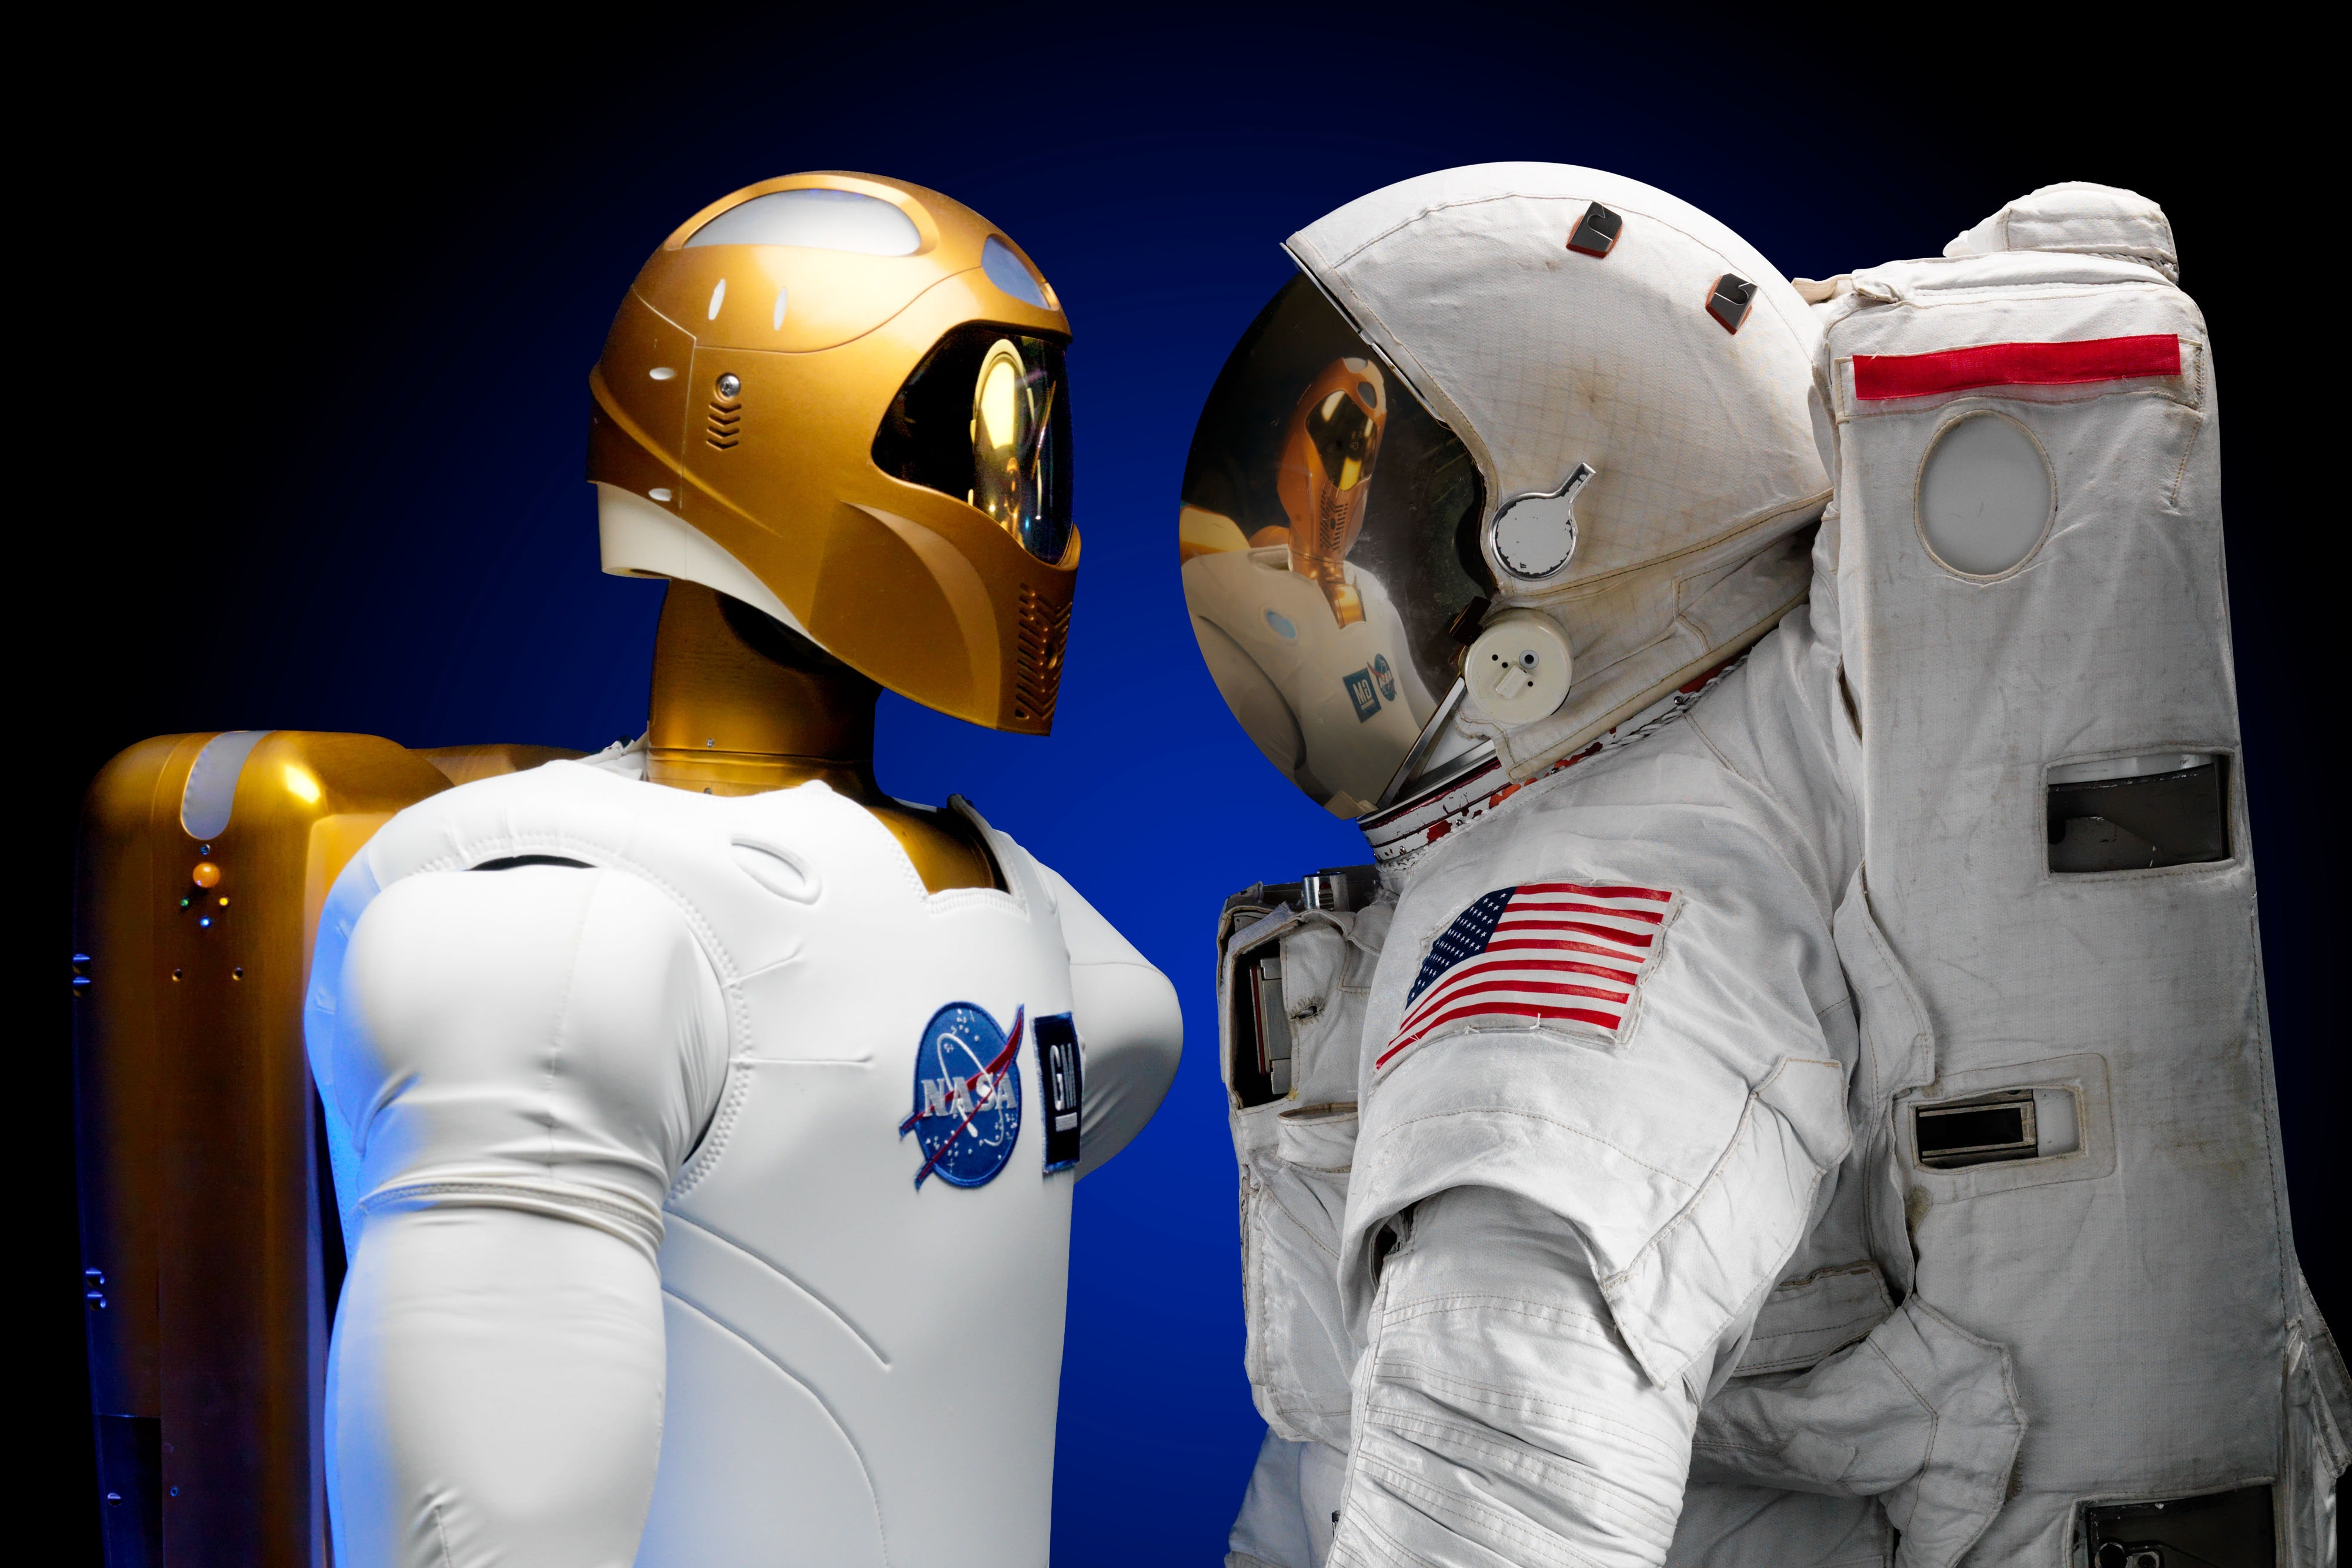 spacesuit-weight, color, designs